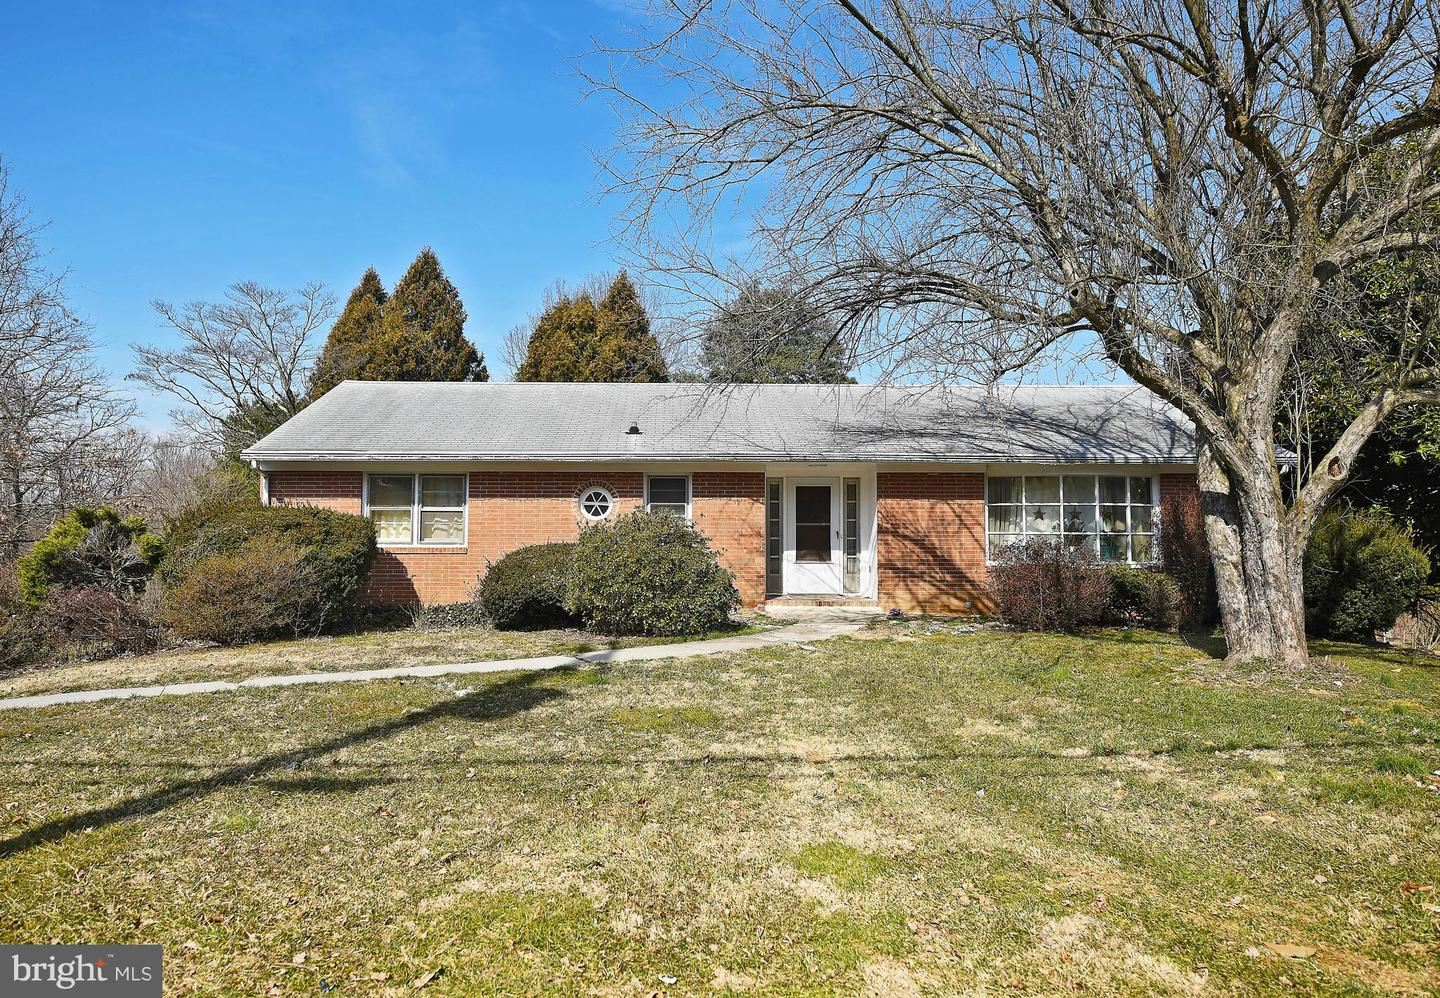 1554 MAIN ST, Whiteford, MD 21160 - MLS#: MDHR257340